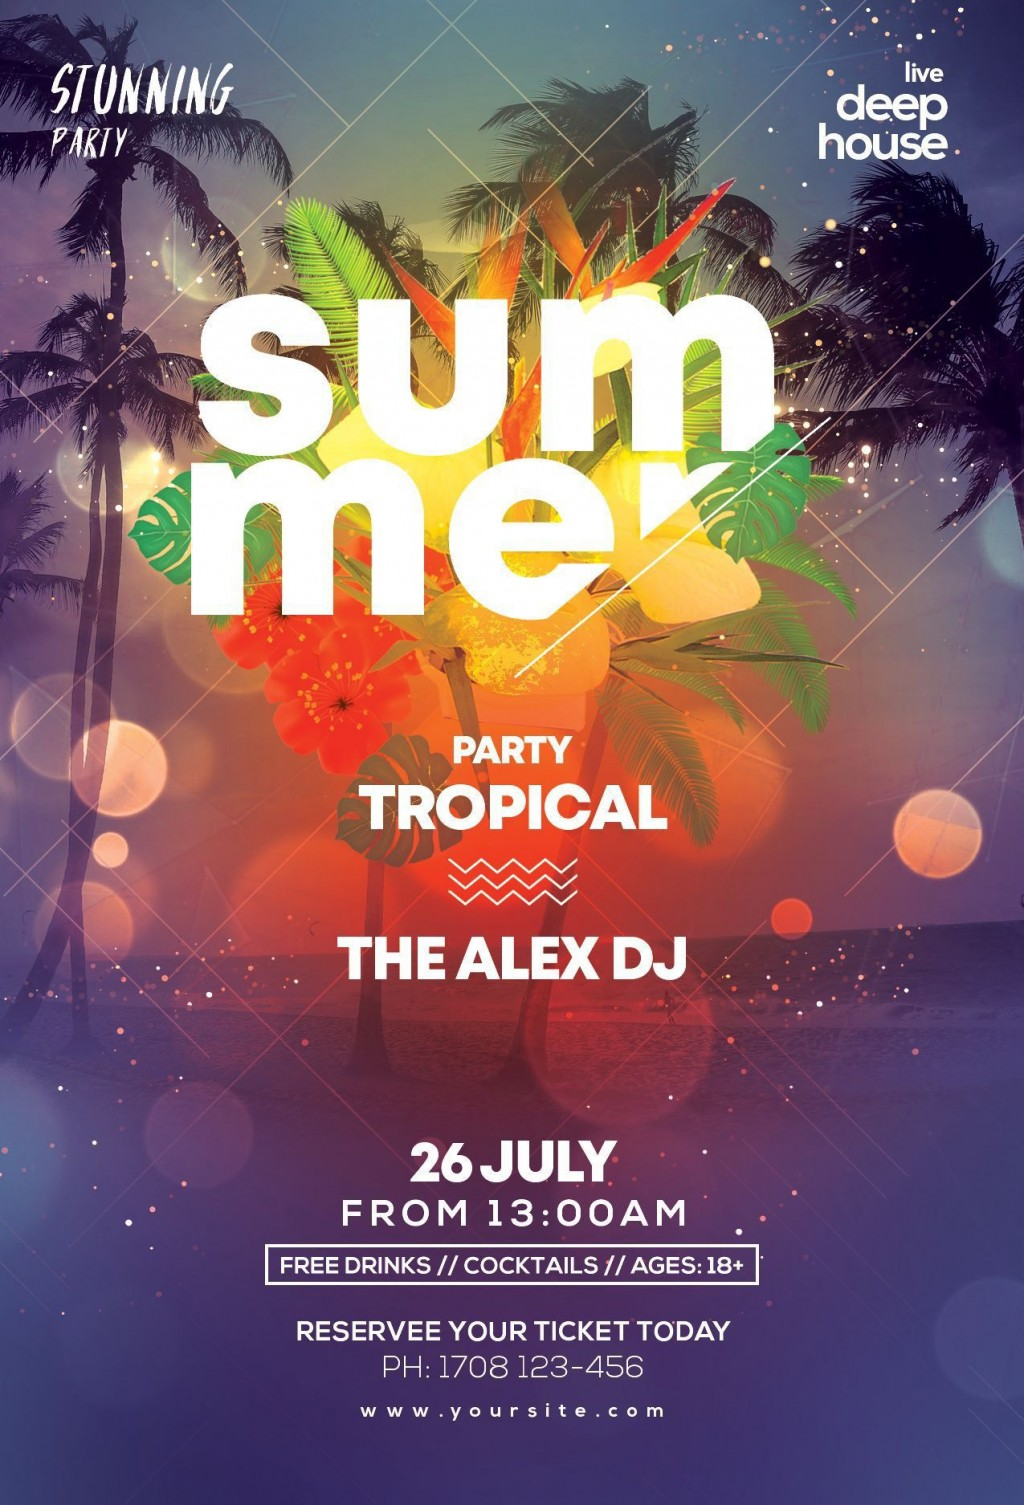 003 Top Summer Party Flyer Template Free Download Photo Large